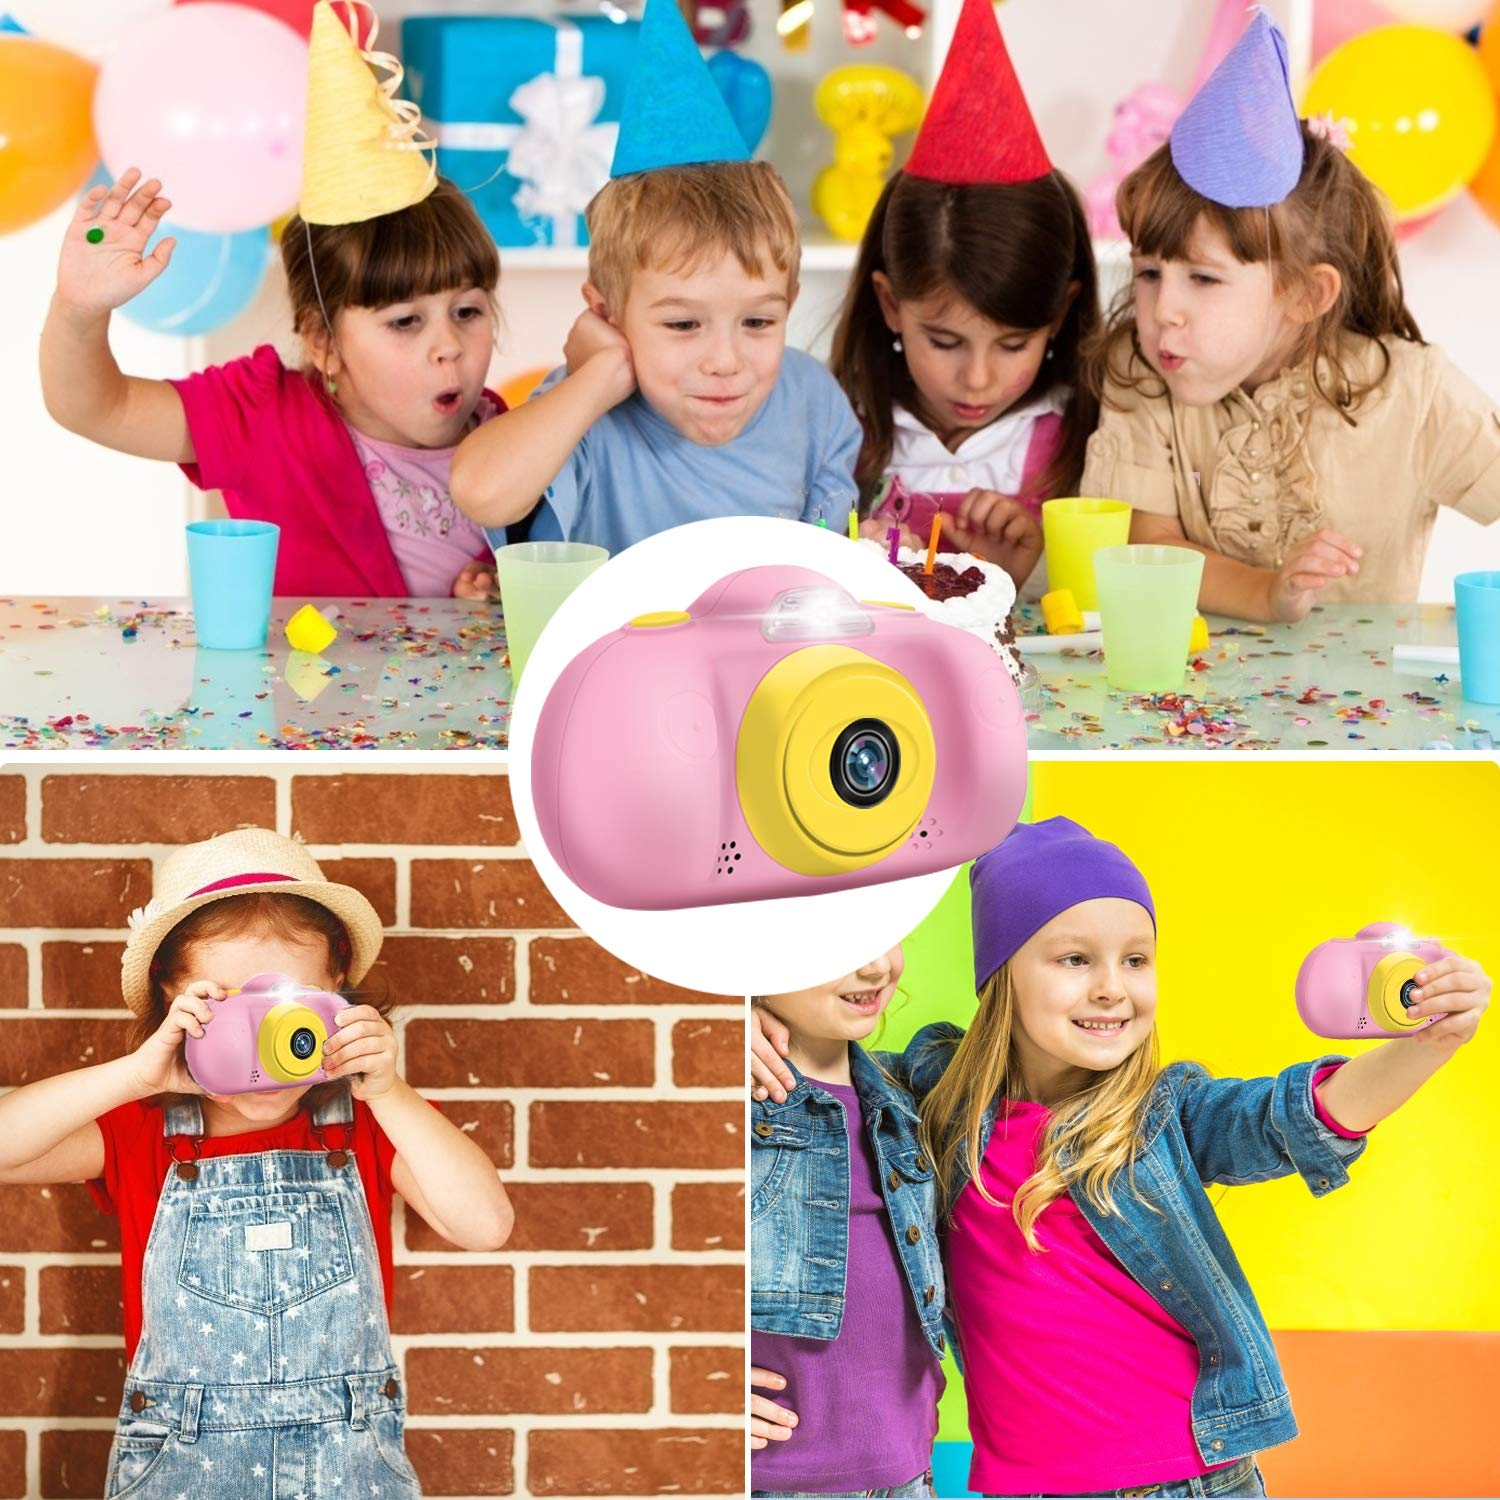 GBD [NEW] Kids Camera Toys for Boys Girls,12MP HD 1080P Selfie Video Camera with MP3 Player Games DUAL Lens, 2.4'' Digital Camcorder Recorder Back to School Birthday Gift,(Free 16GB Memory Card) (Pink) by GBD (Image #6)